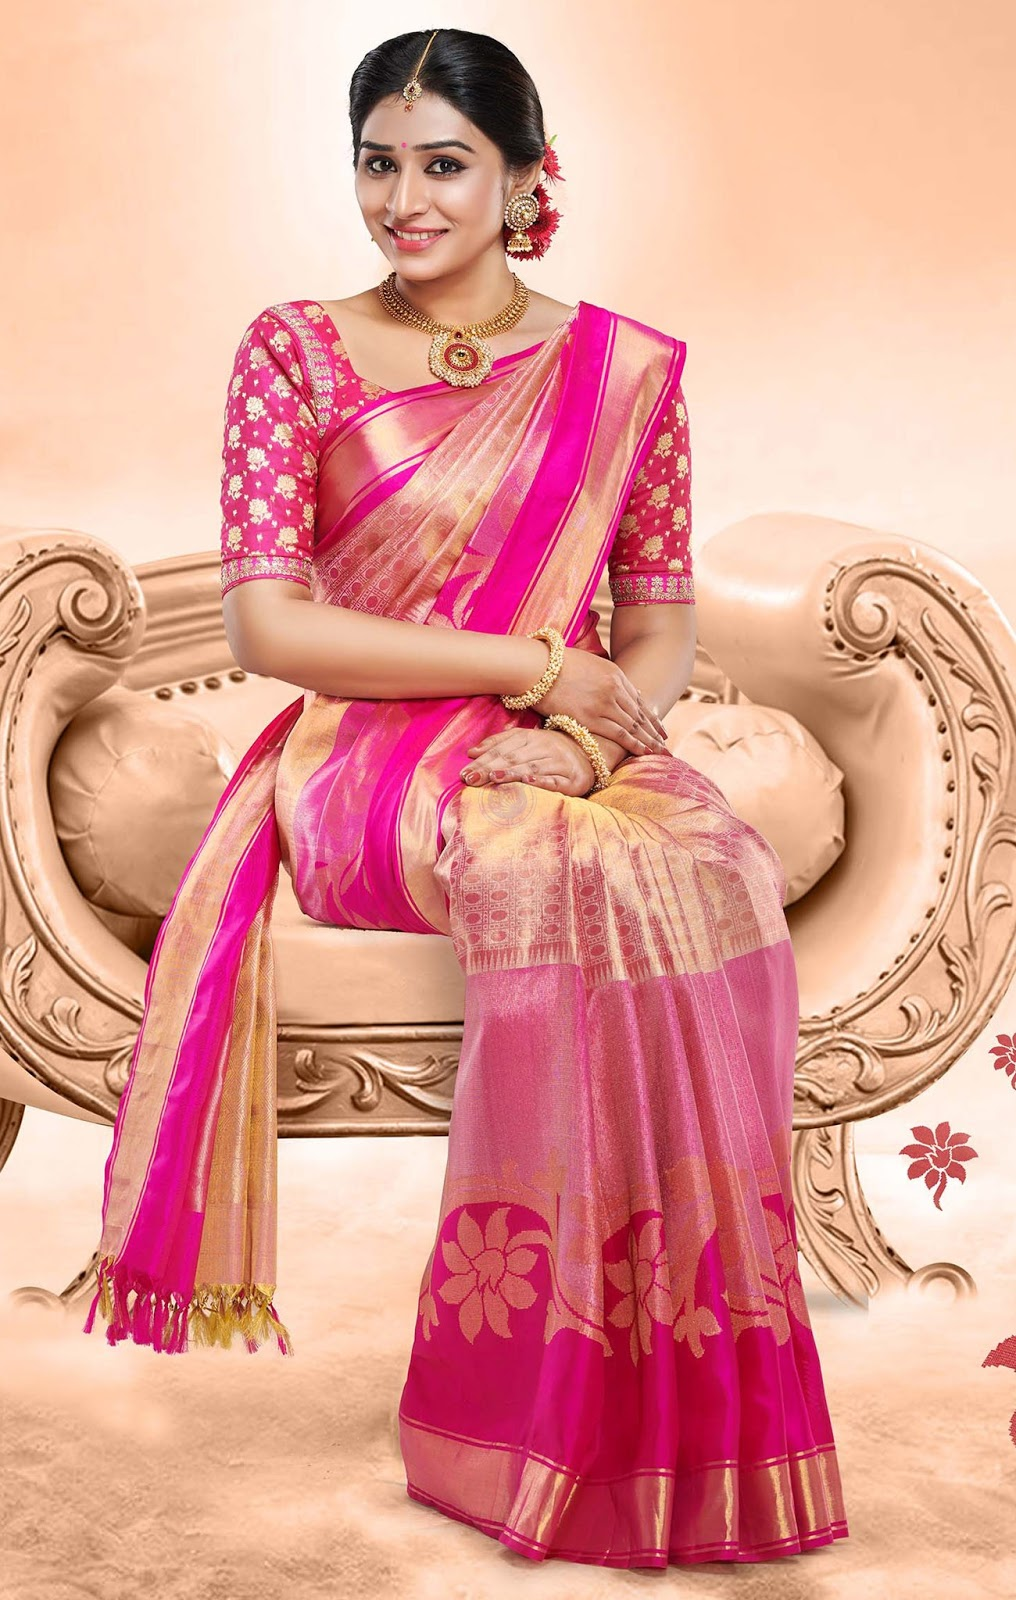 842b50422b Type: Vivaha Silk Saree Material: Pure Silk Color: Pink Pallu: Gold color  with full of weaving design work. Body: A mix of gold and pink work.